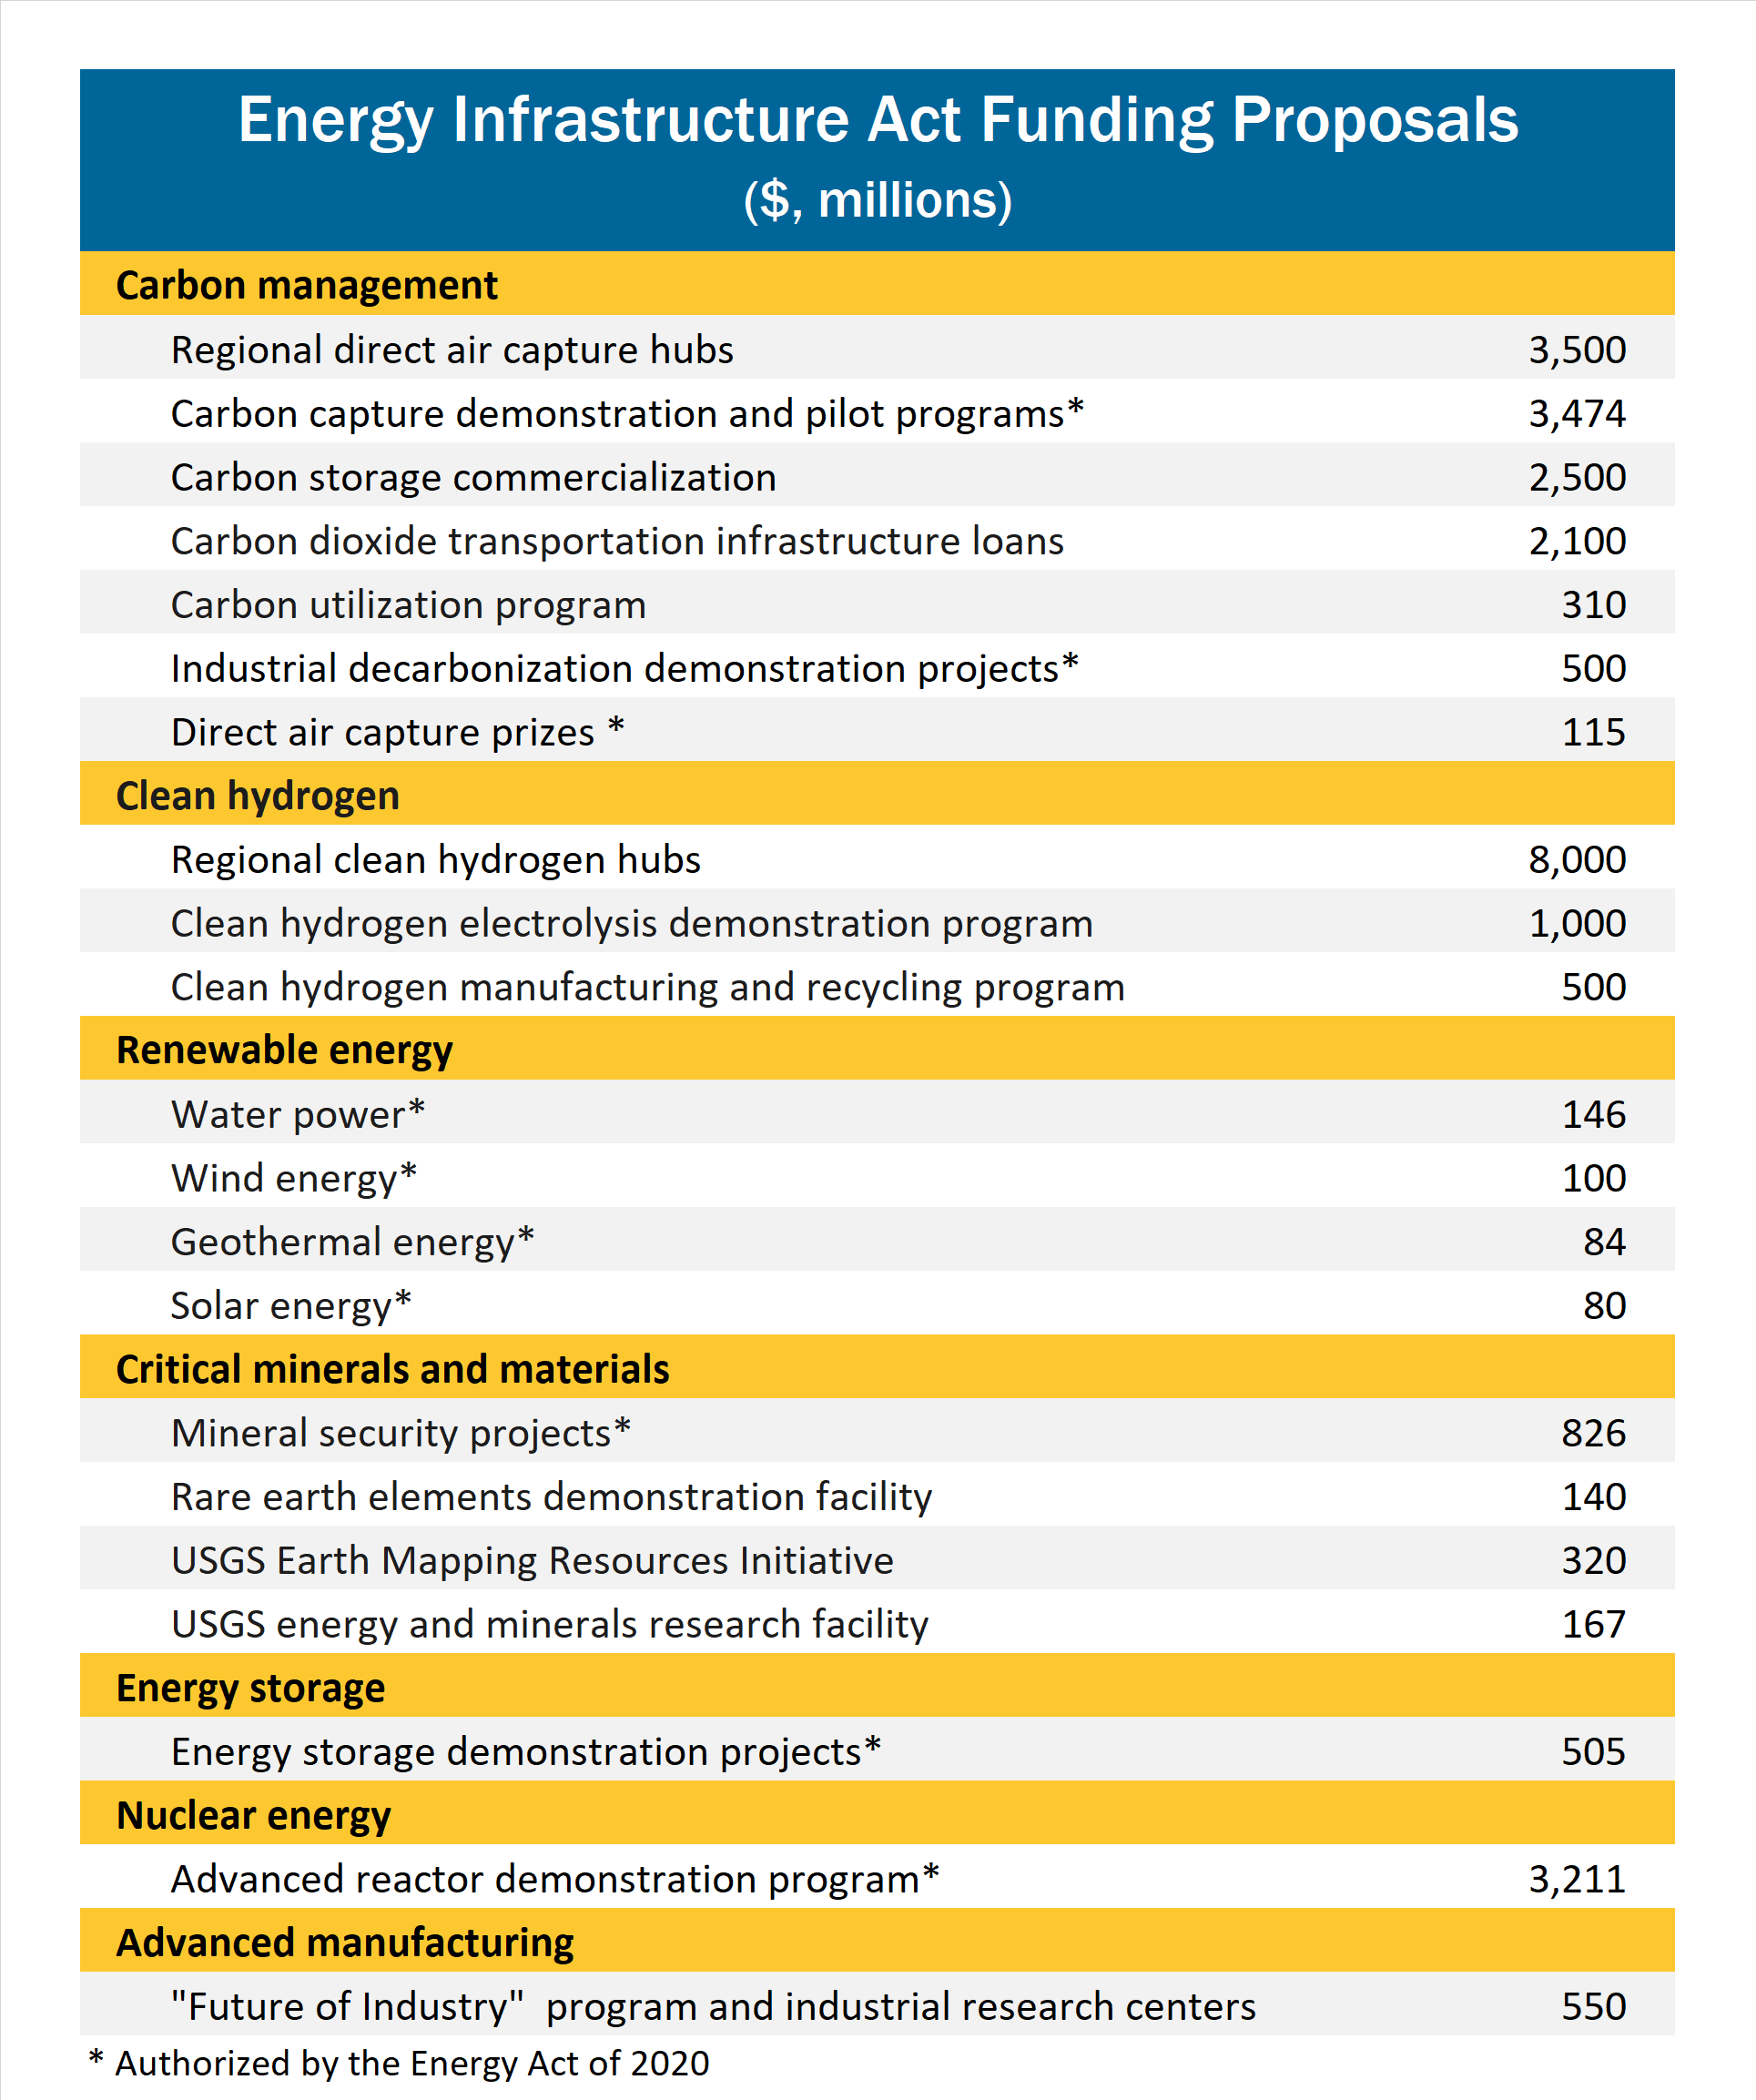 Energy Infrastructure Act funding proposals table